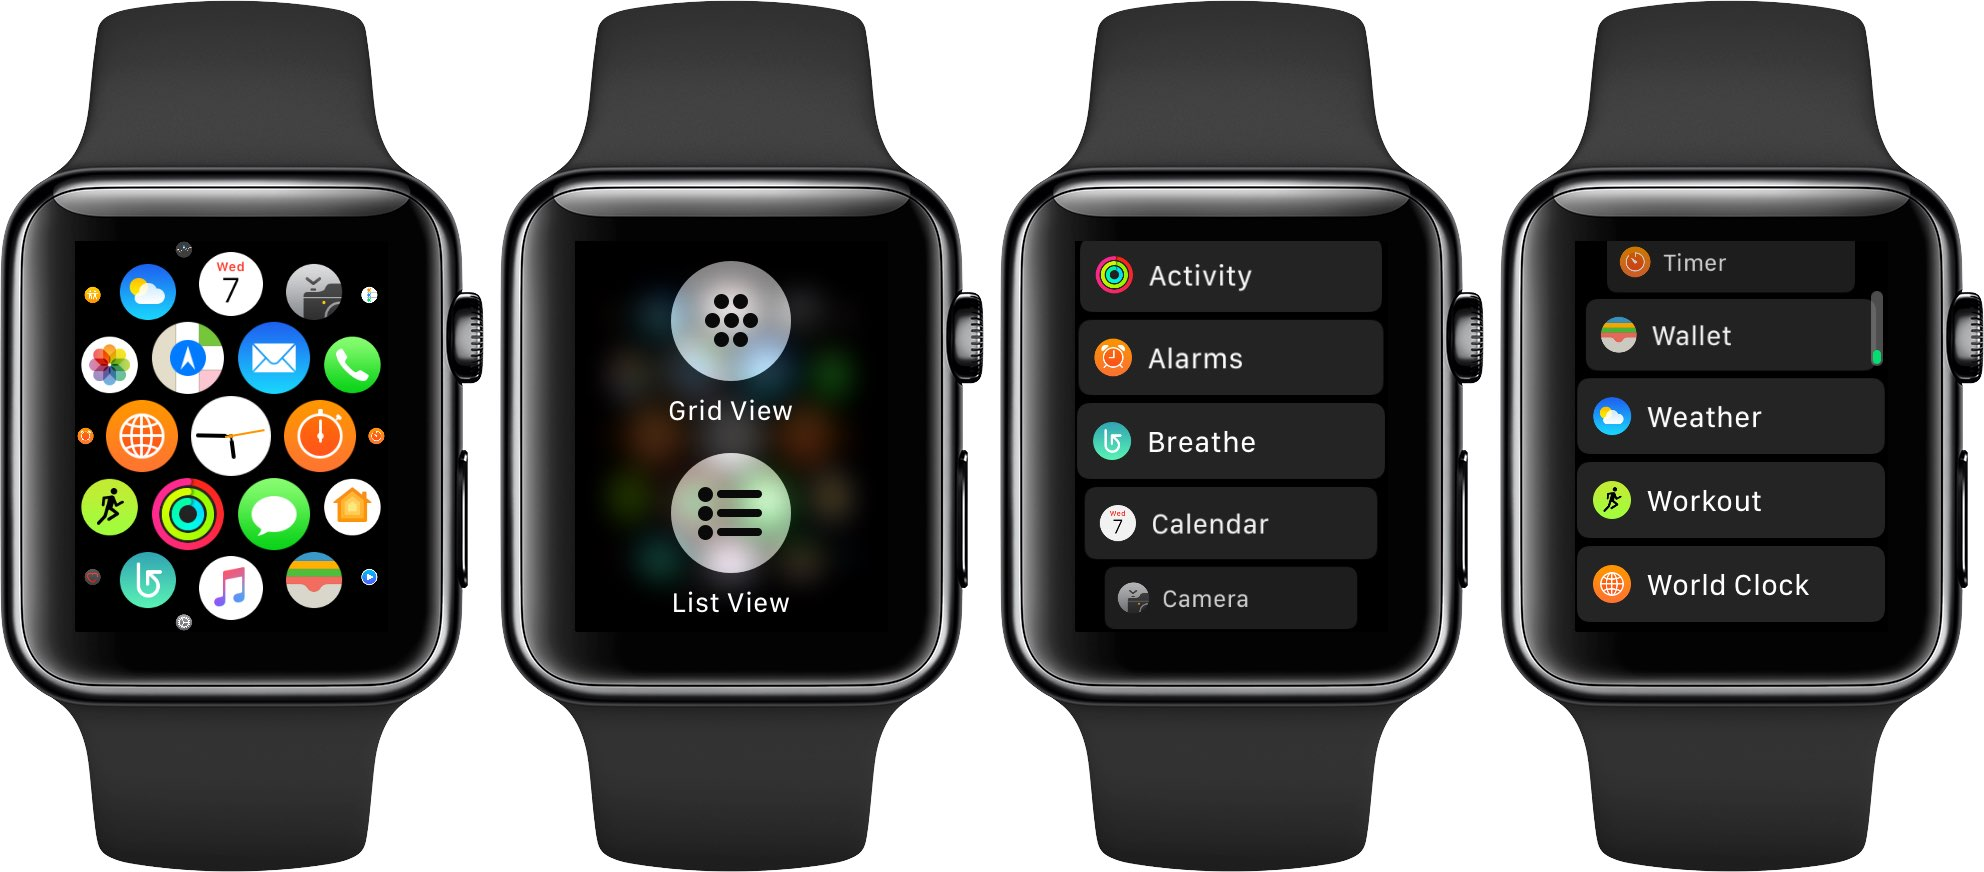 switch from grid to list view apple watch